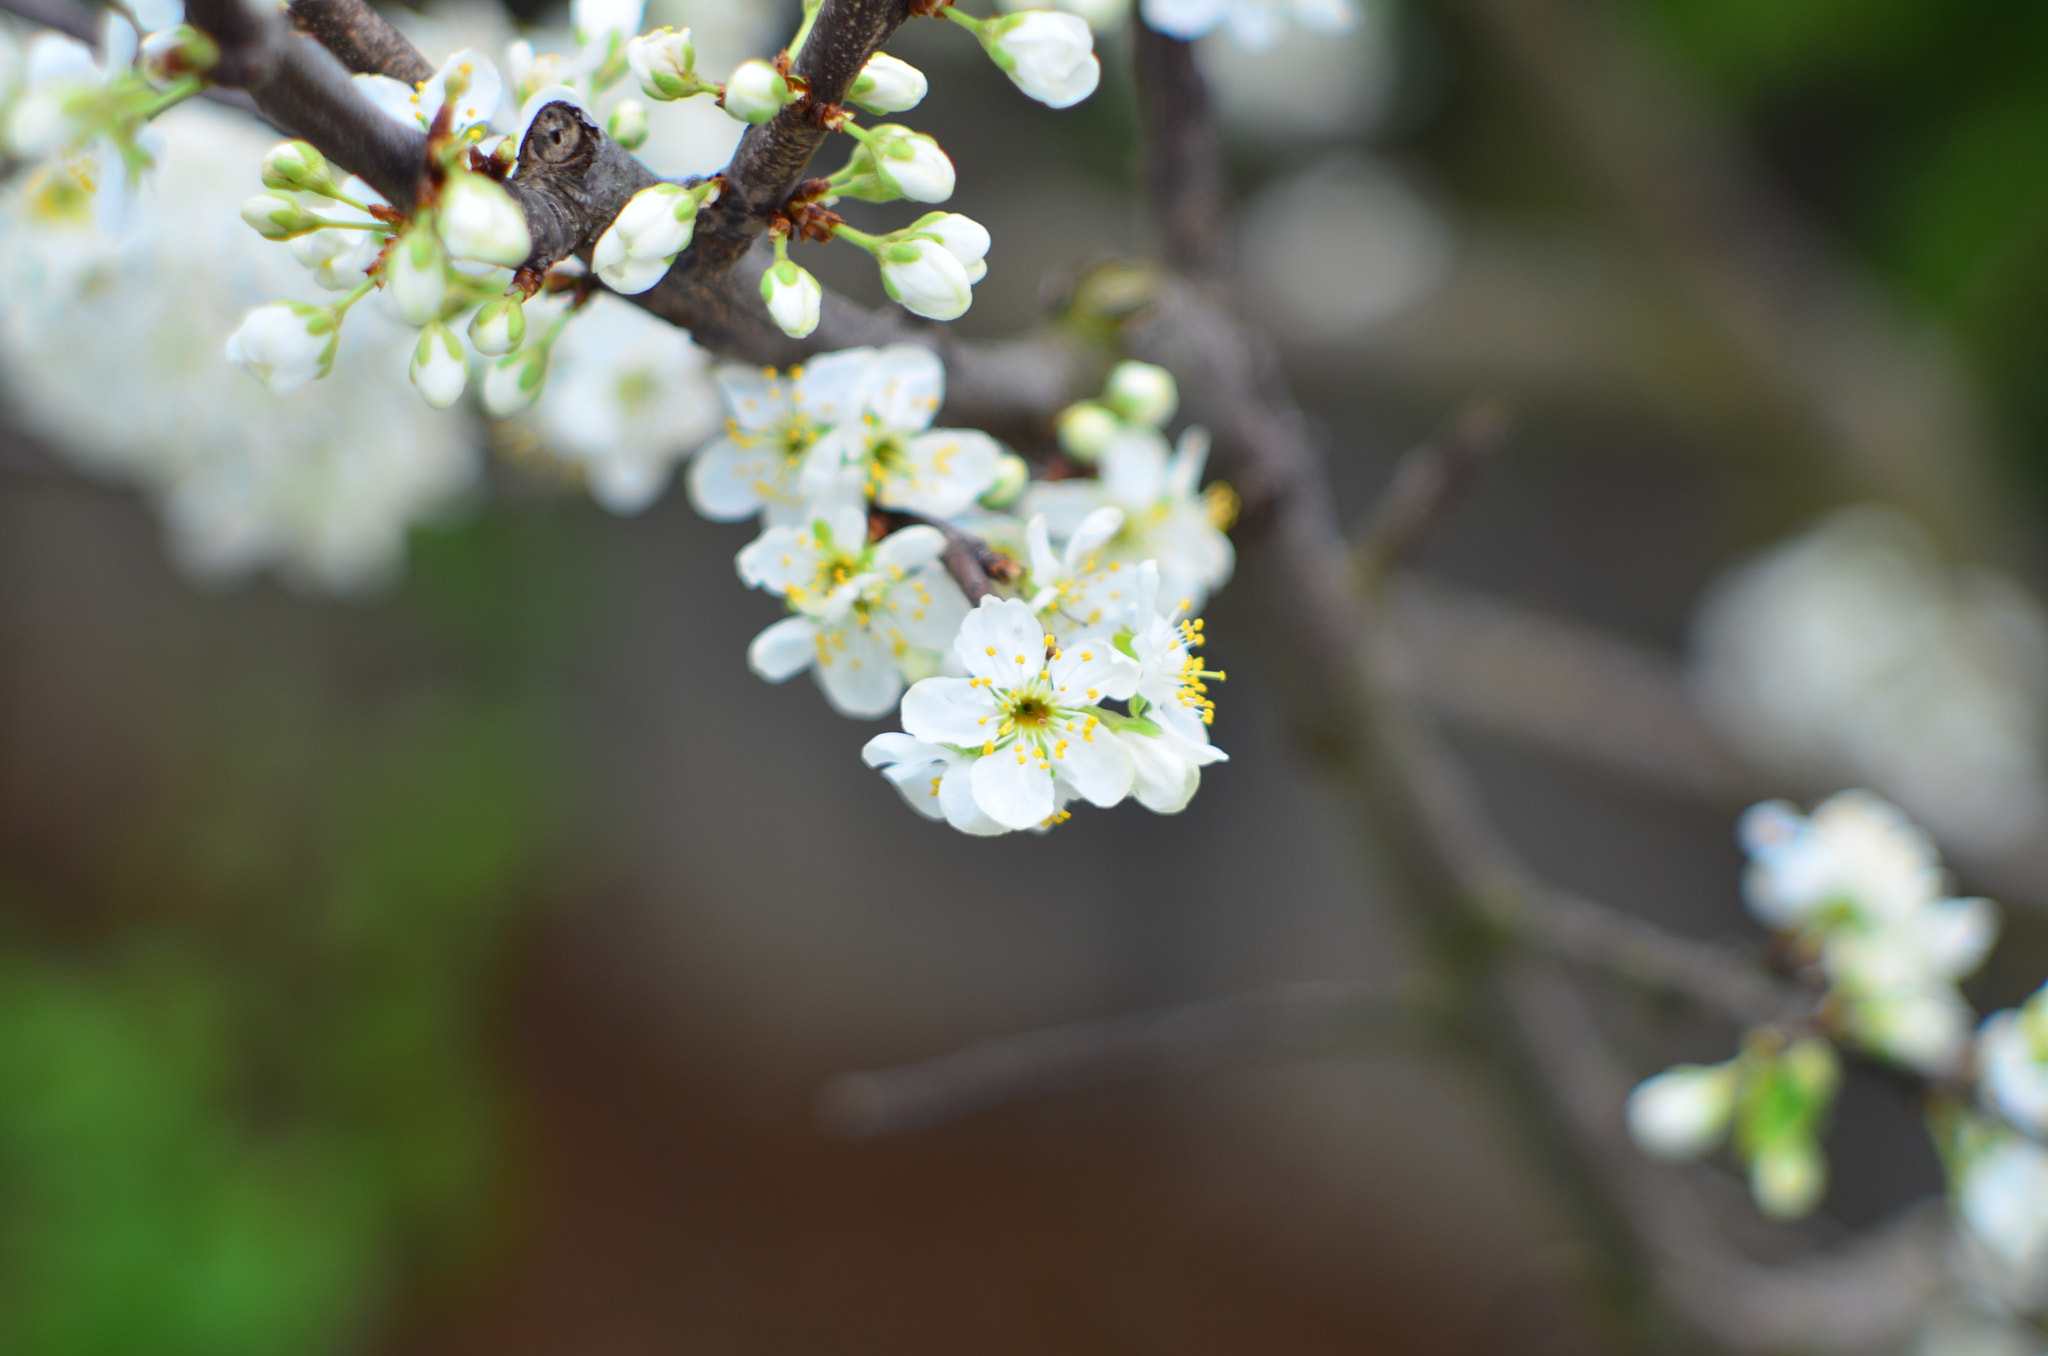 Photograph Plum blossom II by The Oal on 500px